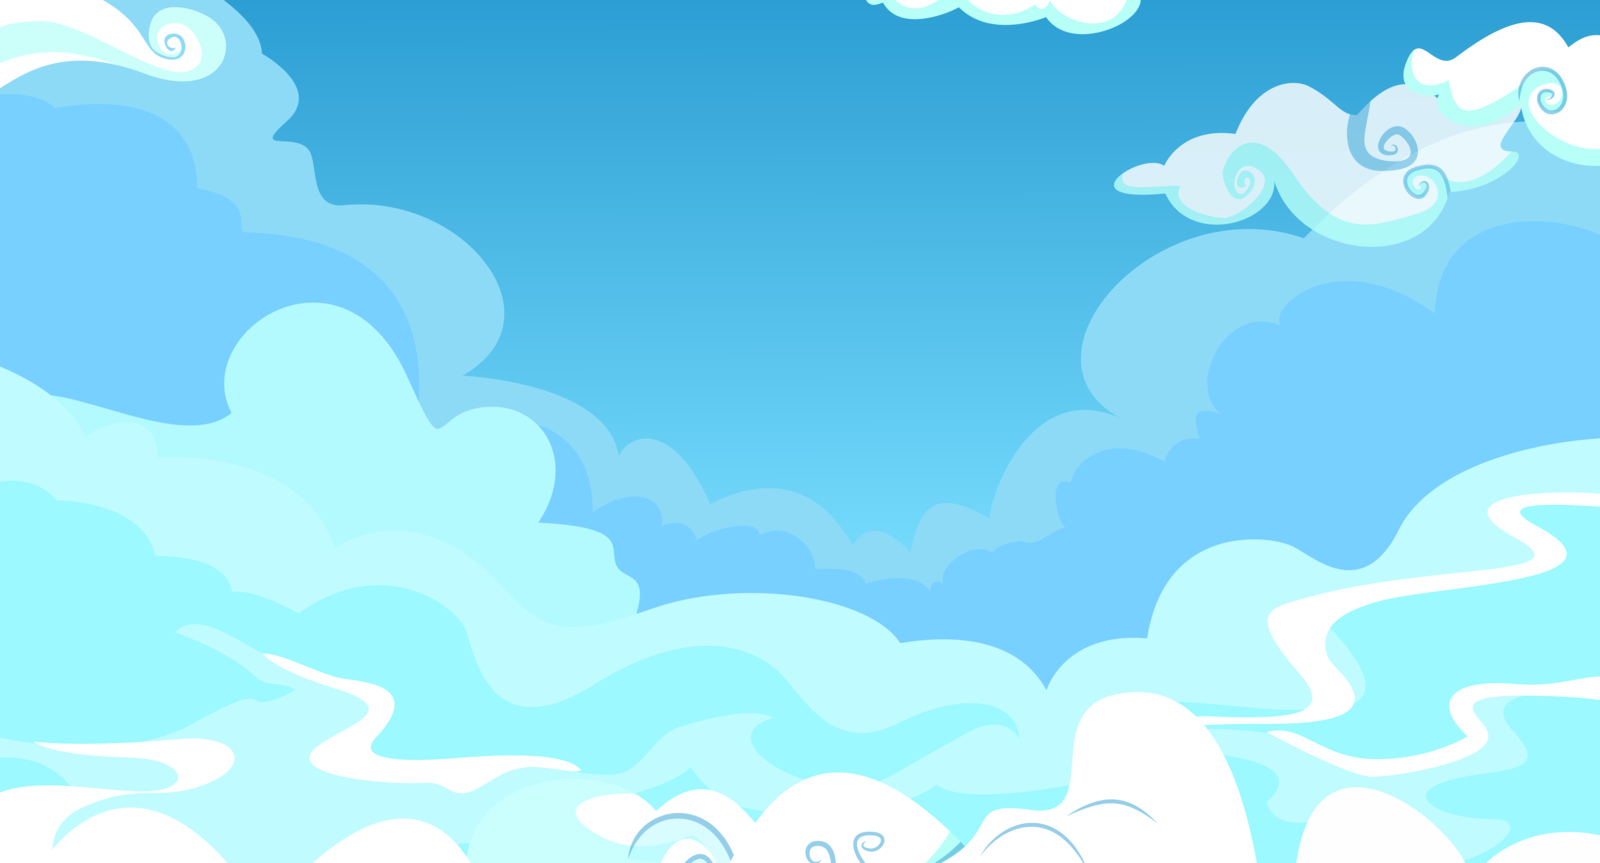 Sky Background Clipart - Clipart Kid